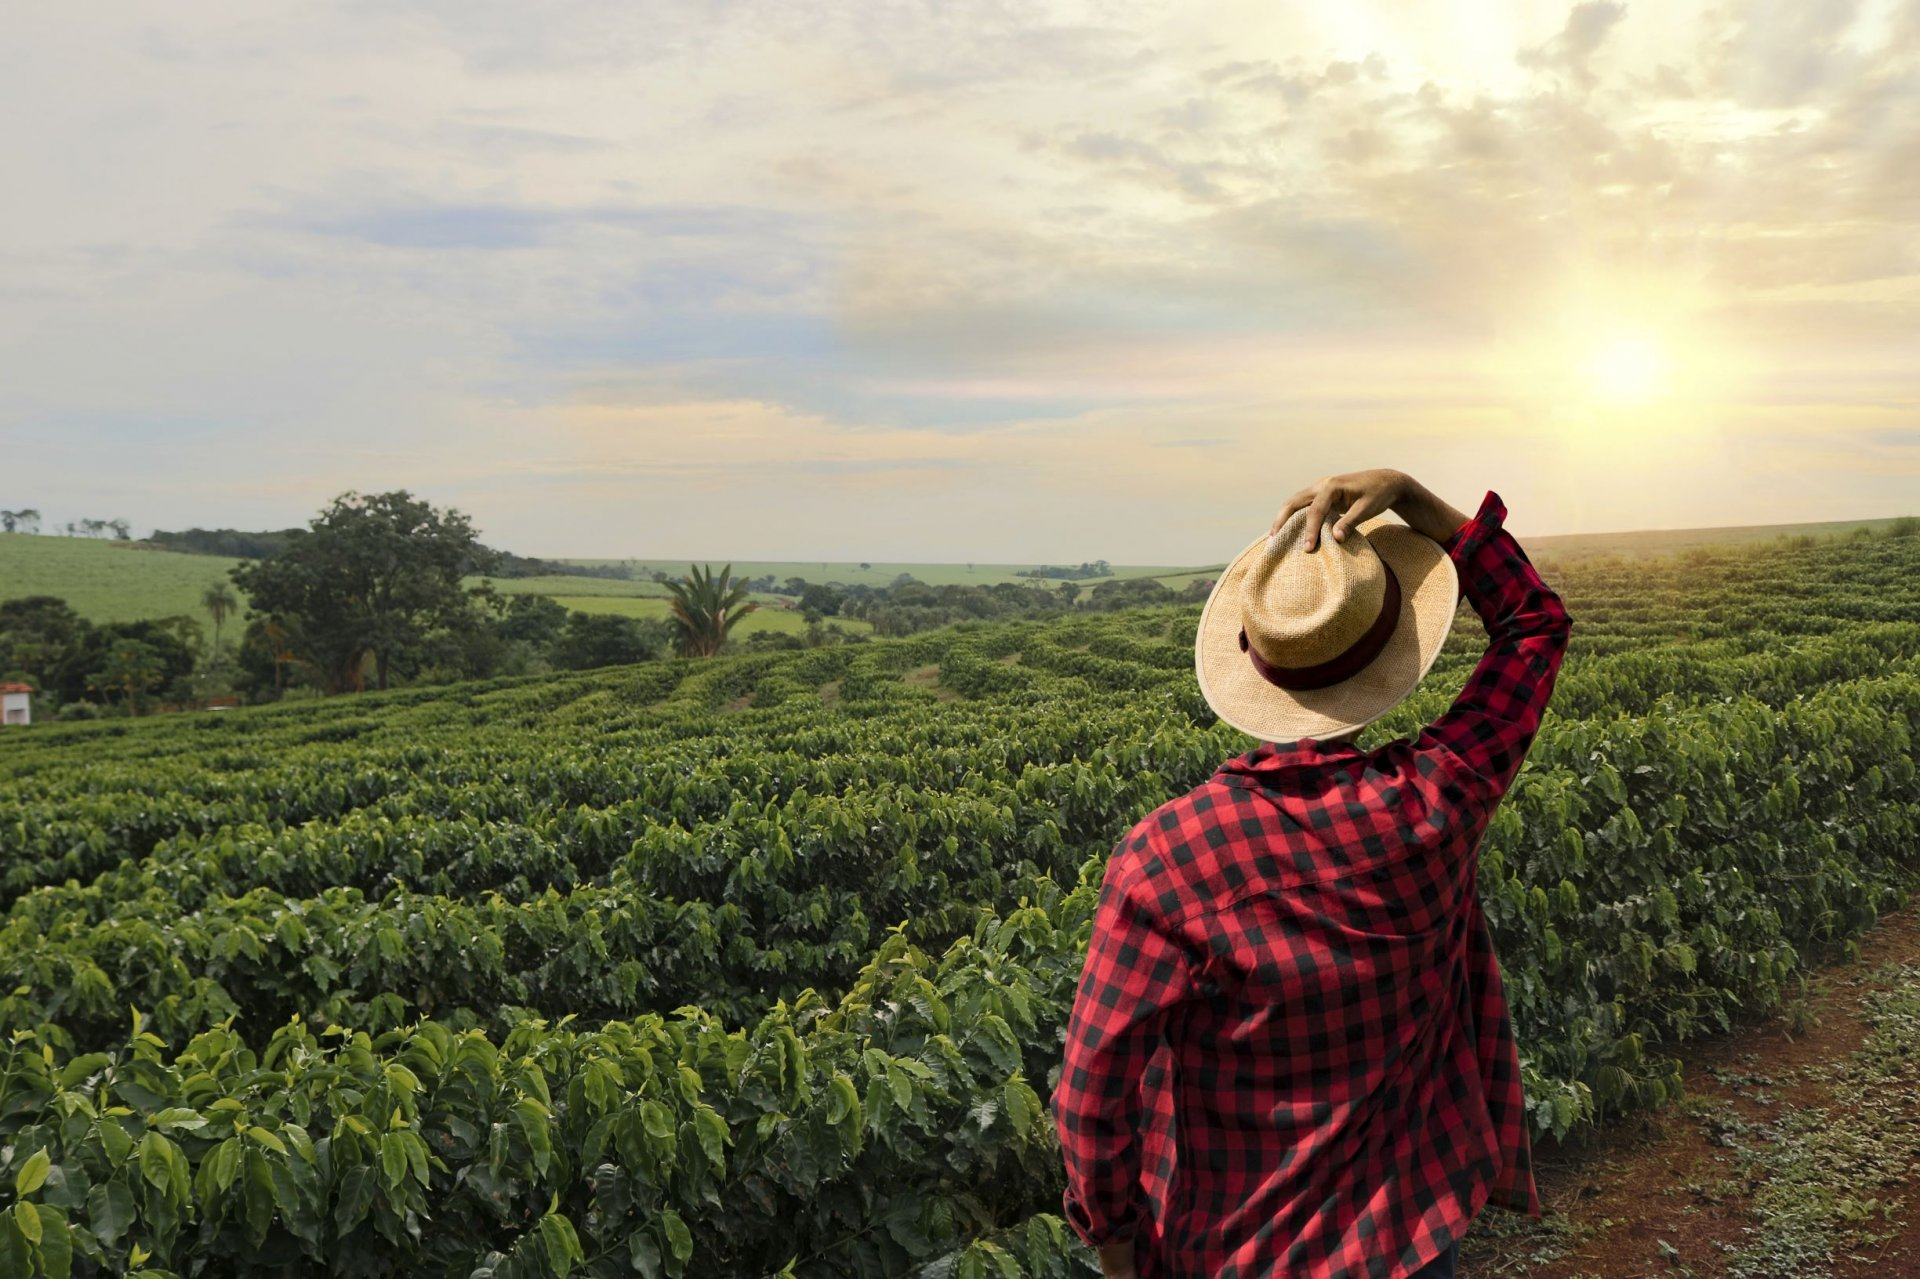 Digital Moses: Helping Farmers Benefit From Digitization in the African Valley